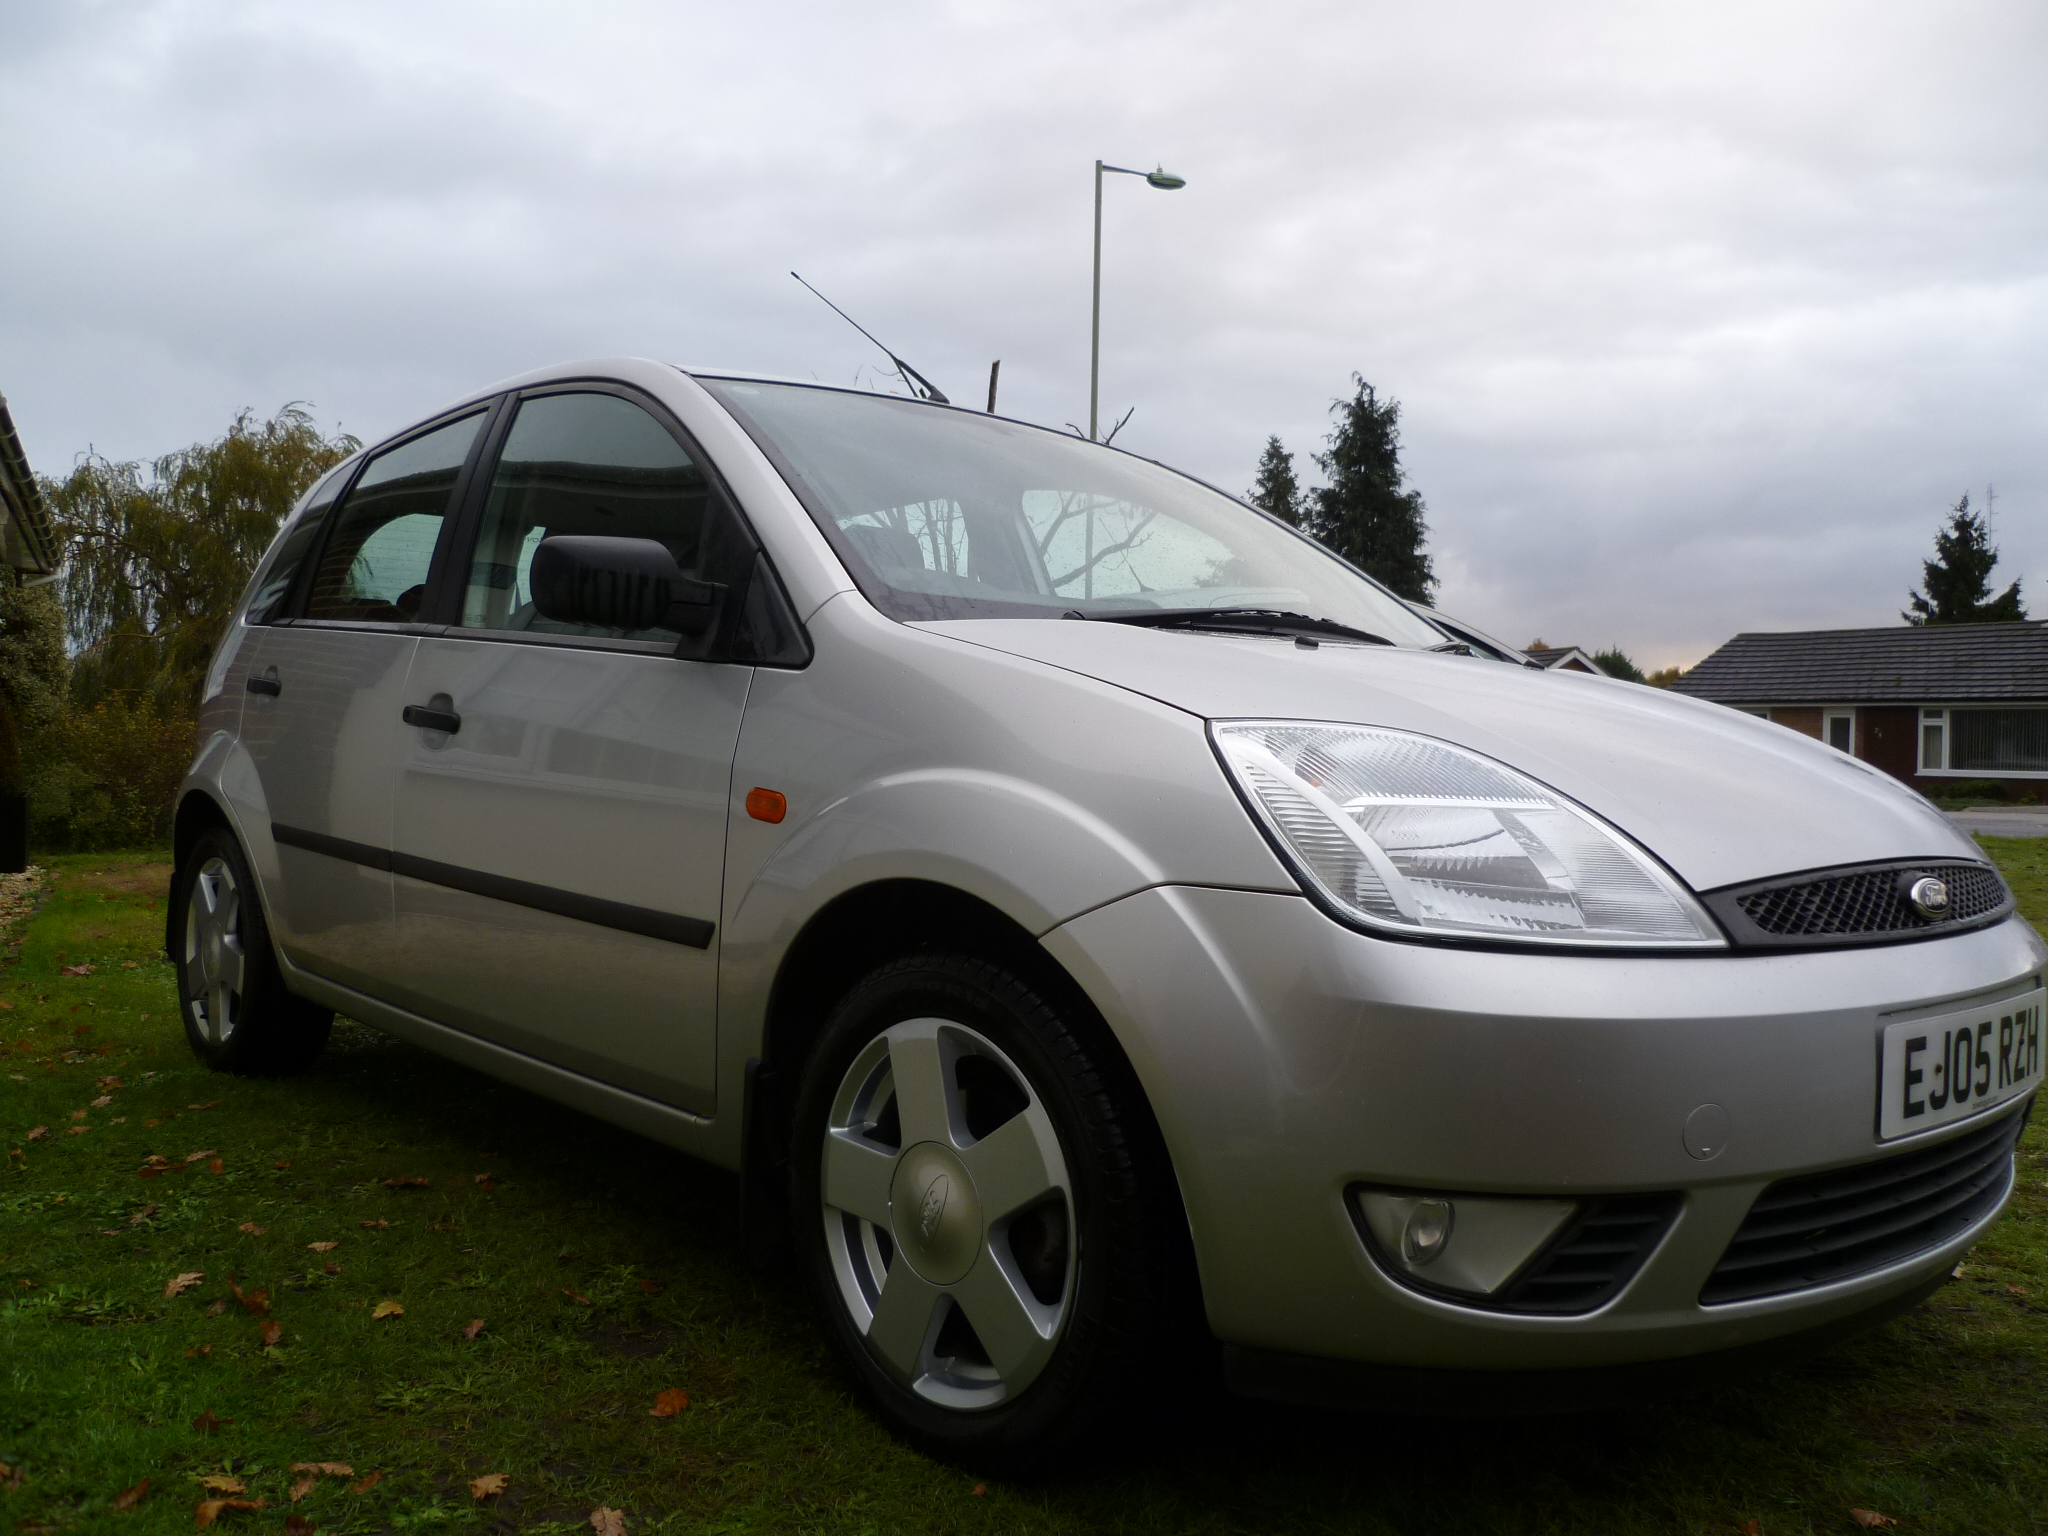 2005 Ford Fiesta Zetec Climate 009